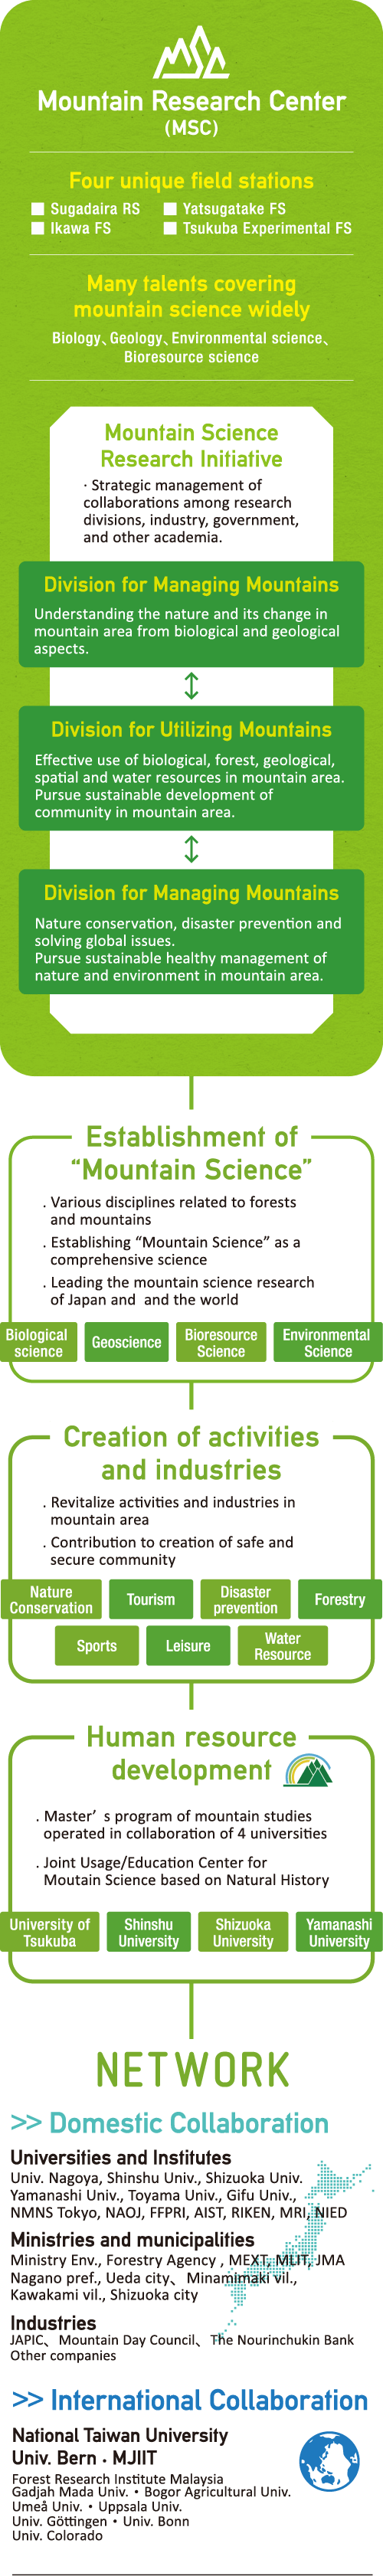 Mountain Science Research Initiative